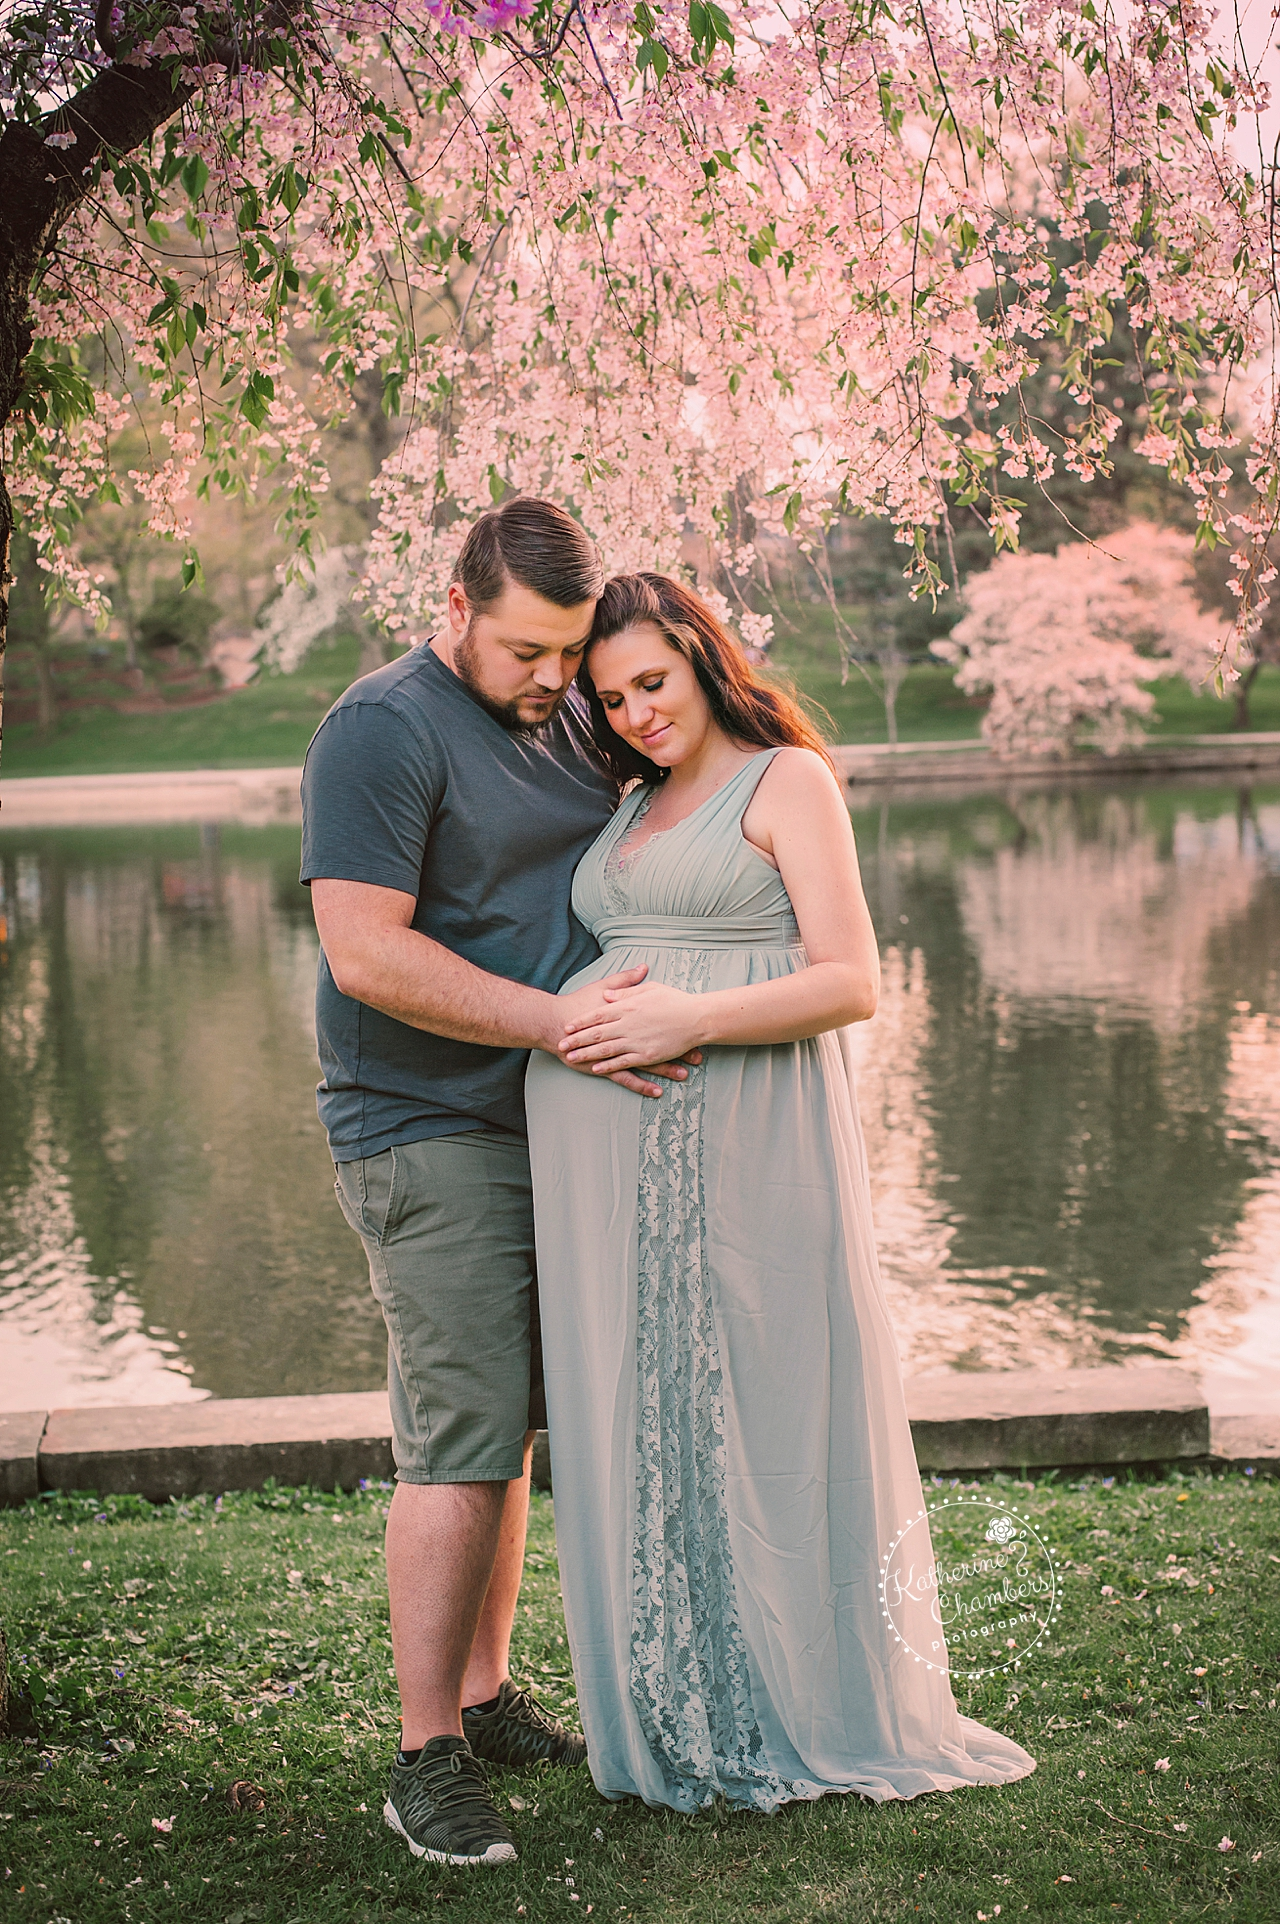 Cleveland Maternity Photographer, Cleveland Newborn Photographer, Cherry Blossom Trees